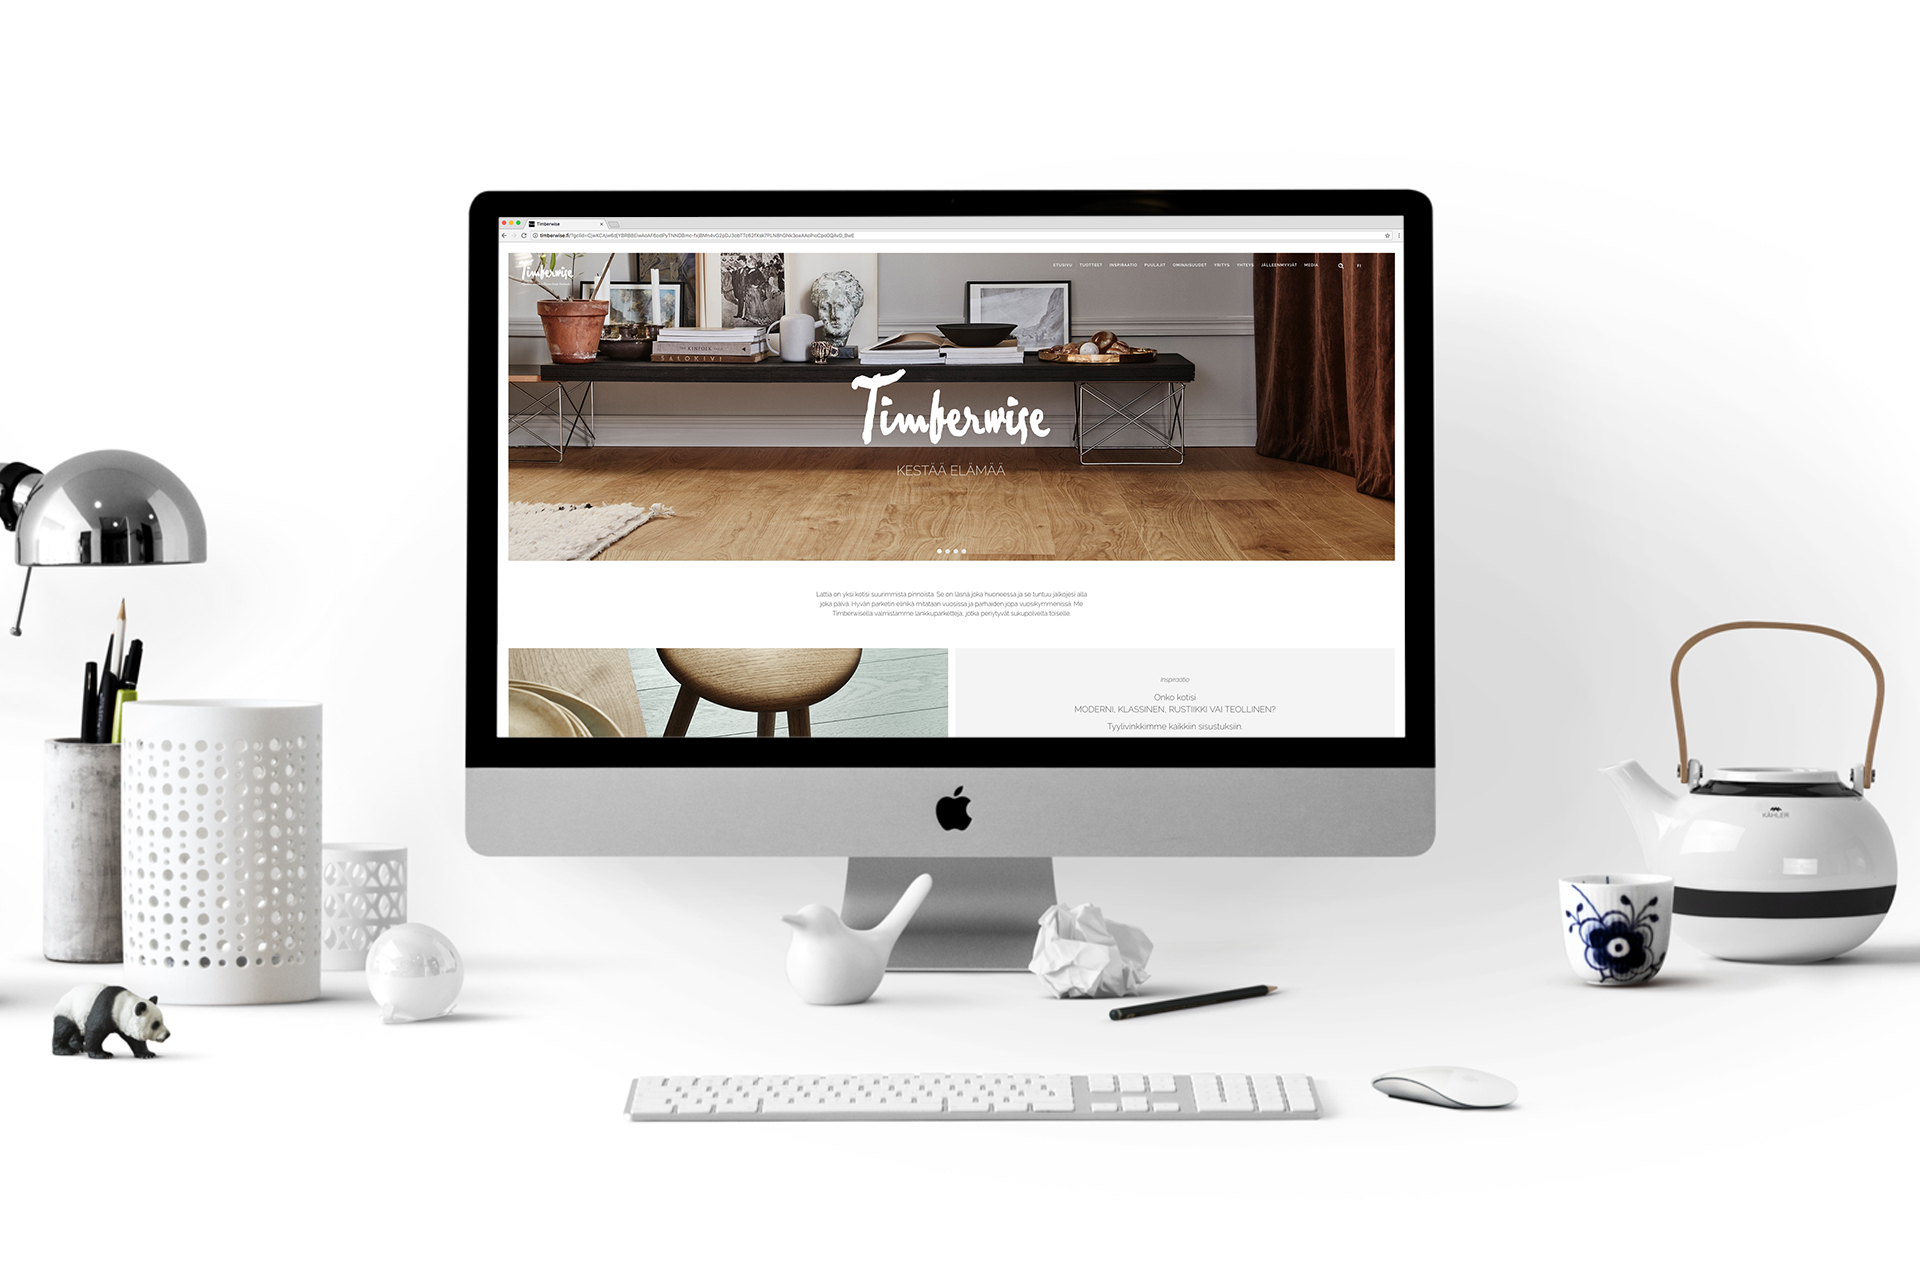 timberwise_Website_iMac on table